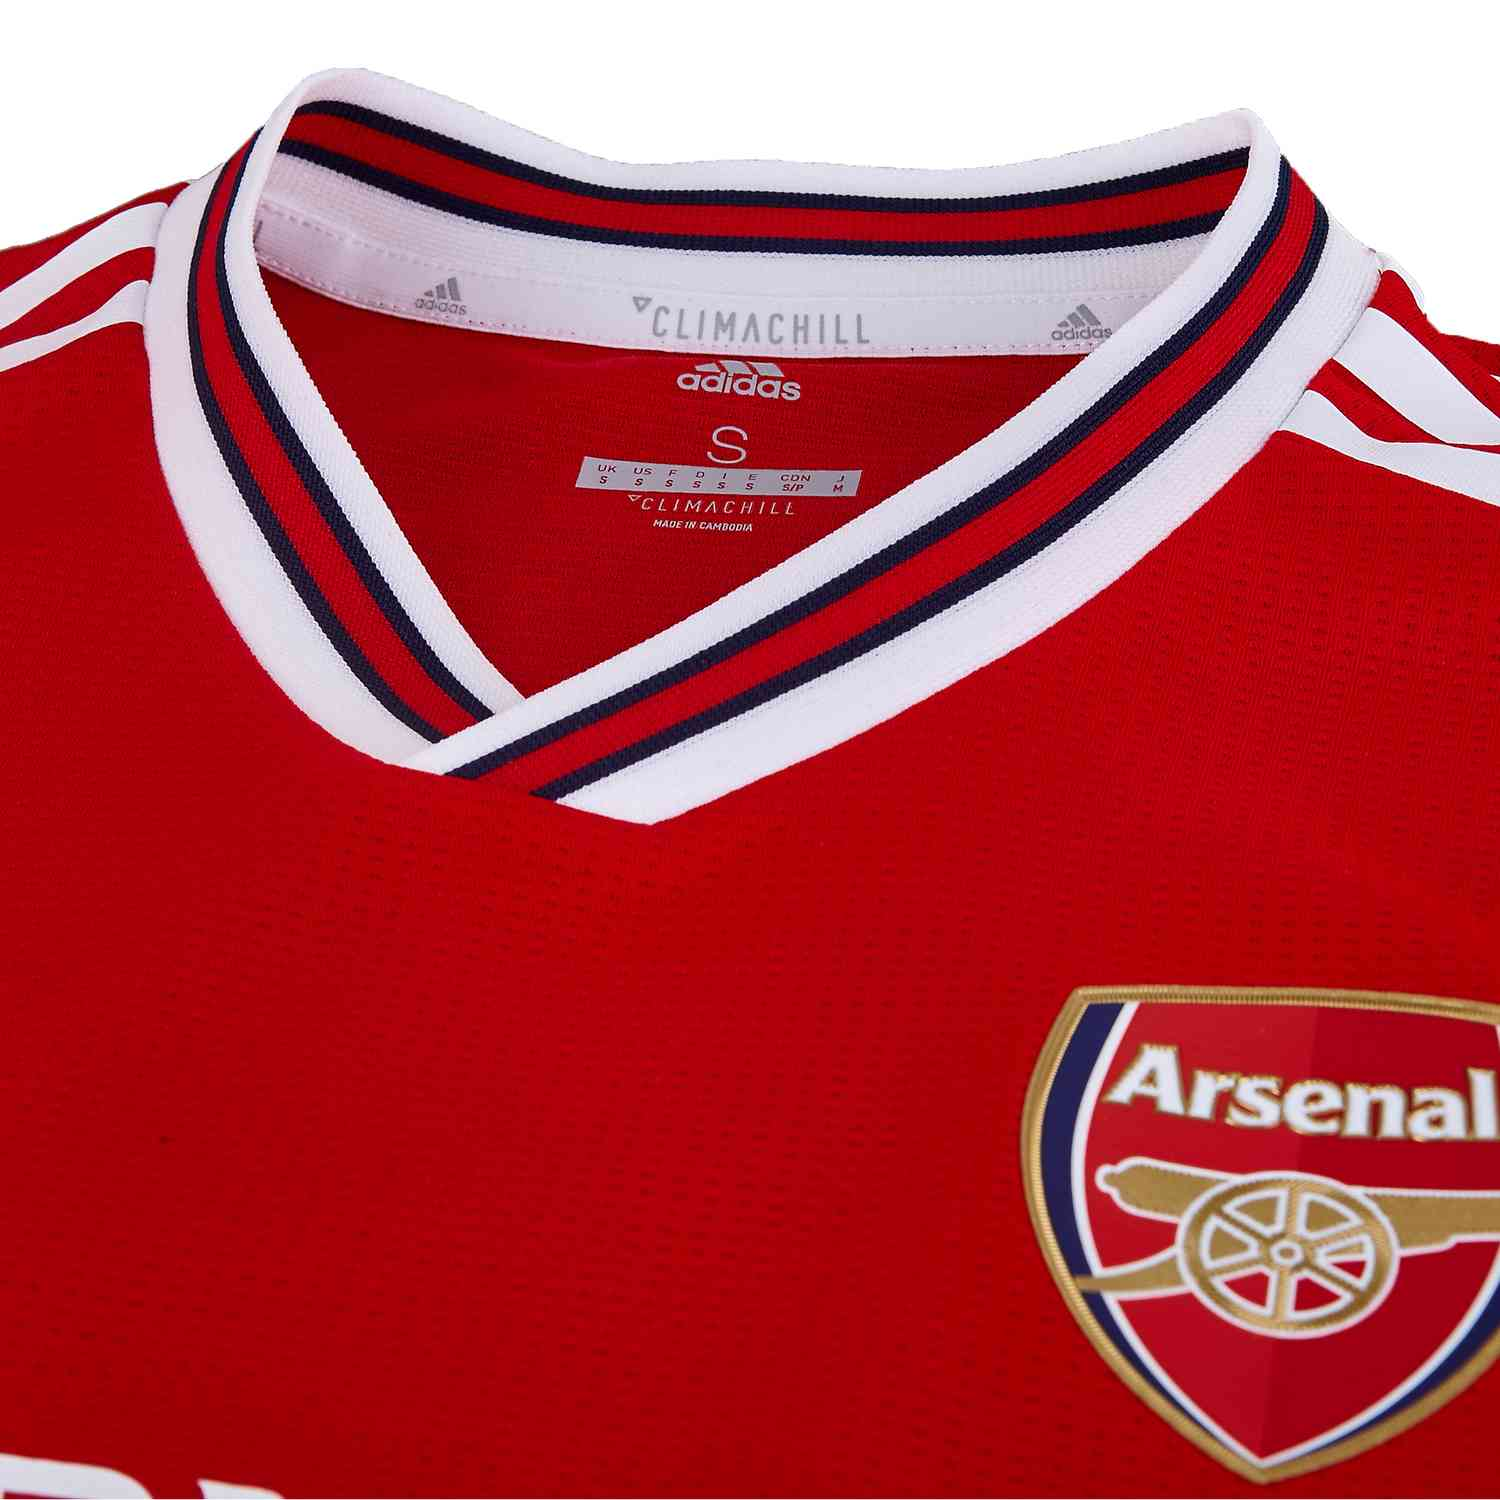 low priced be2a0 99467 adidas Arsenal Home Authentic Jersey - 2019/20 - SoccerPro